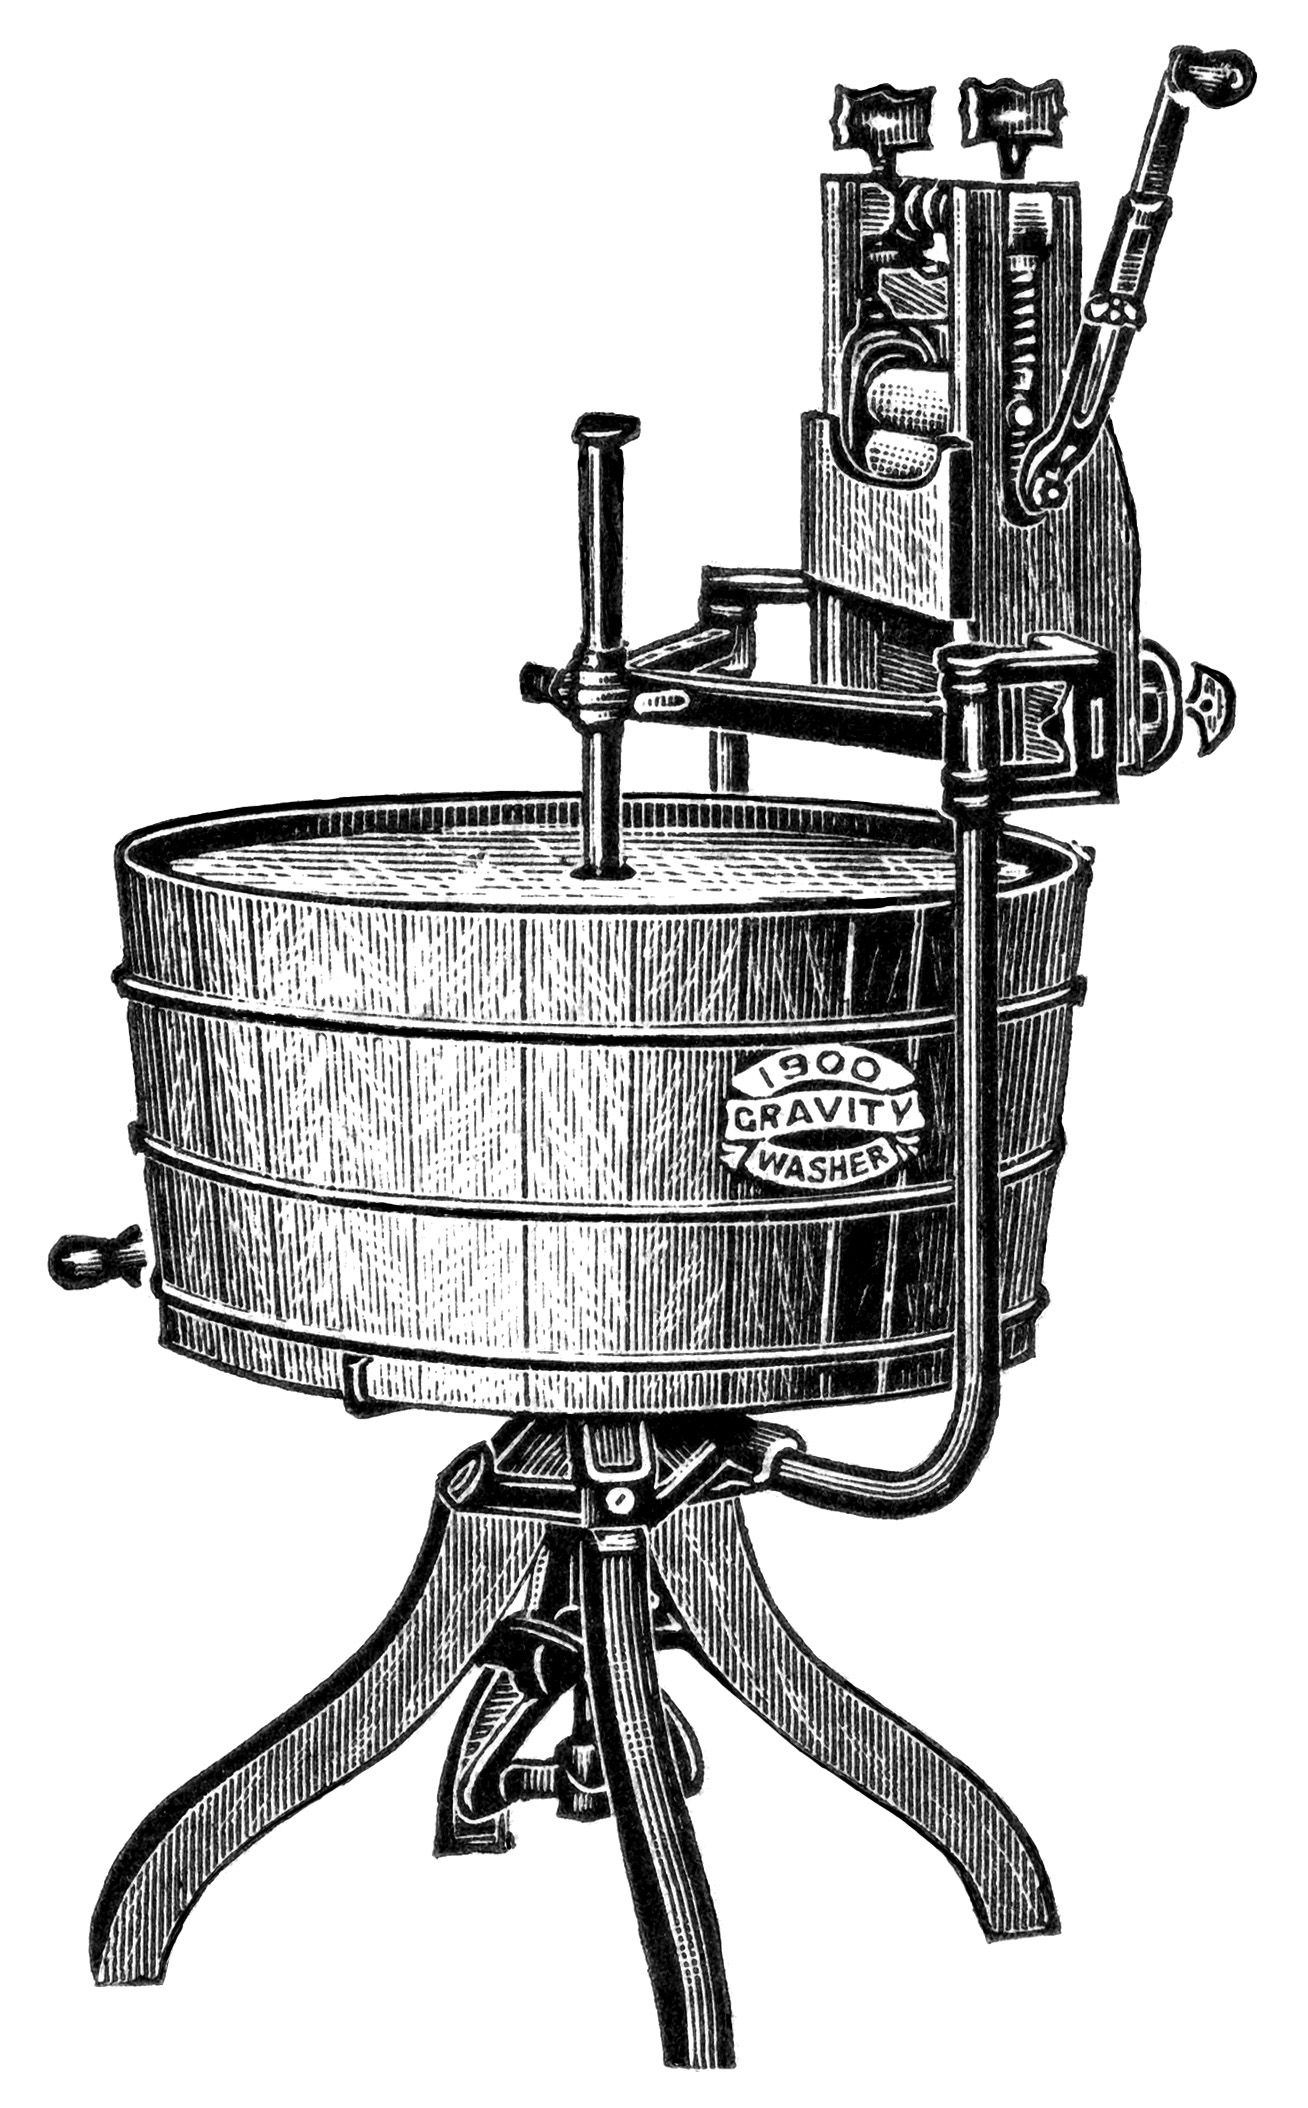 Free Vintage Image Gravity 1900 Washing Machine Ad and Clip.